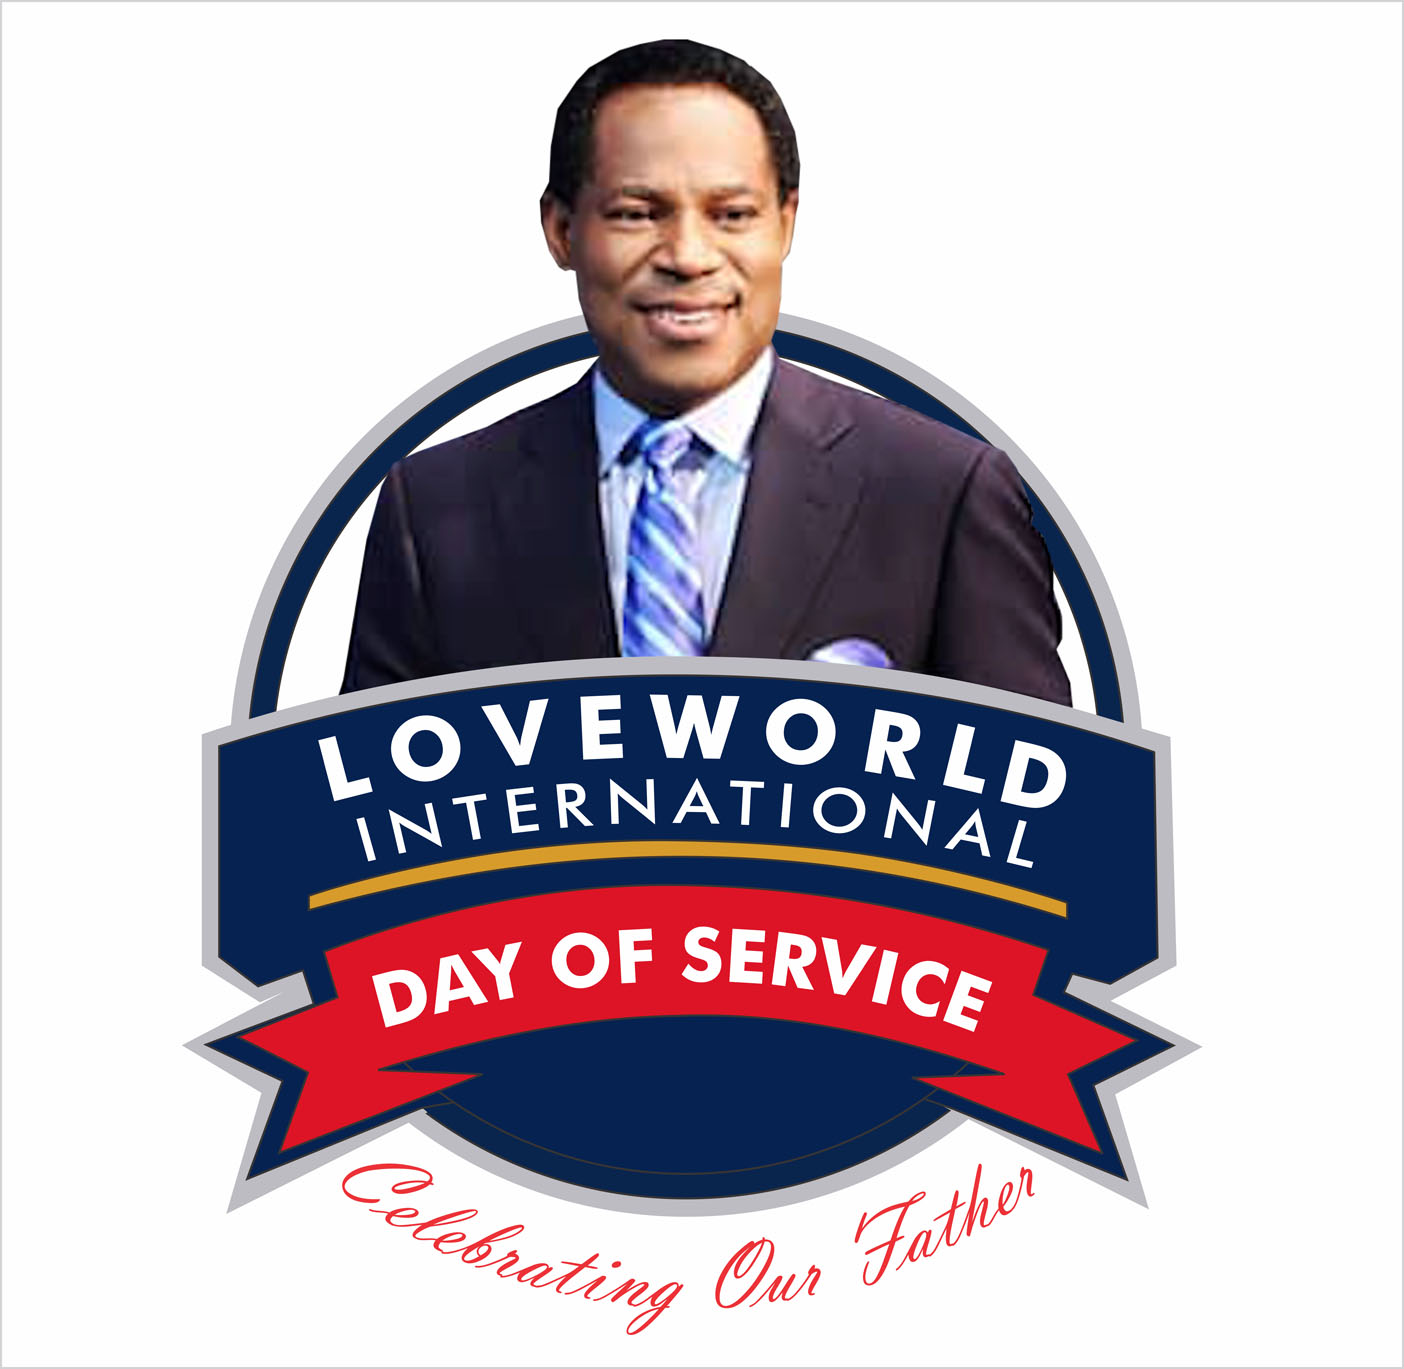 LW Intl Day of Service avatar picture